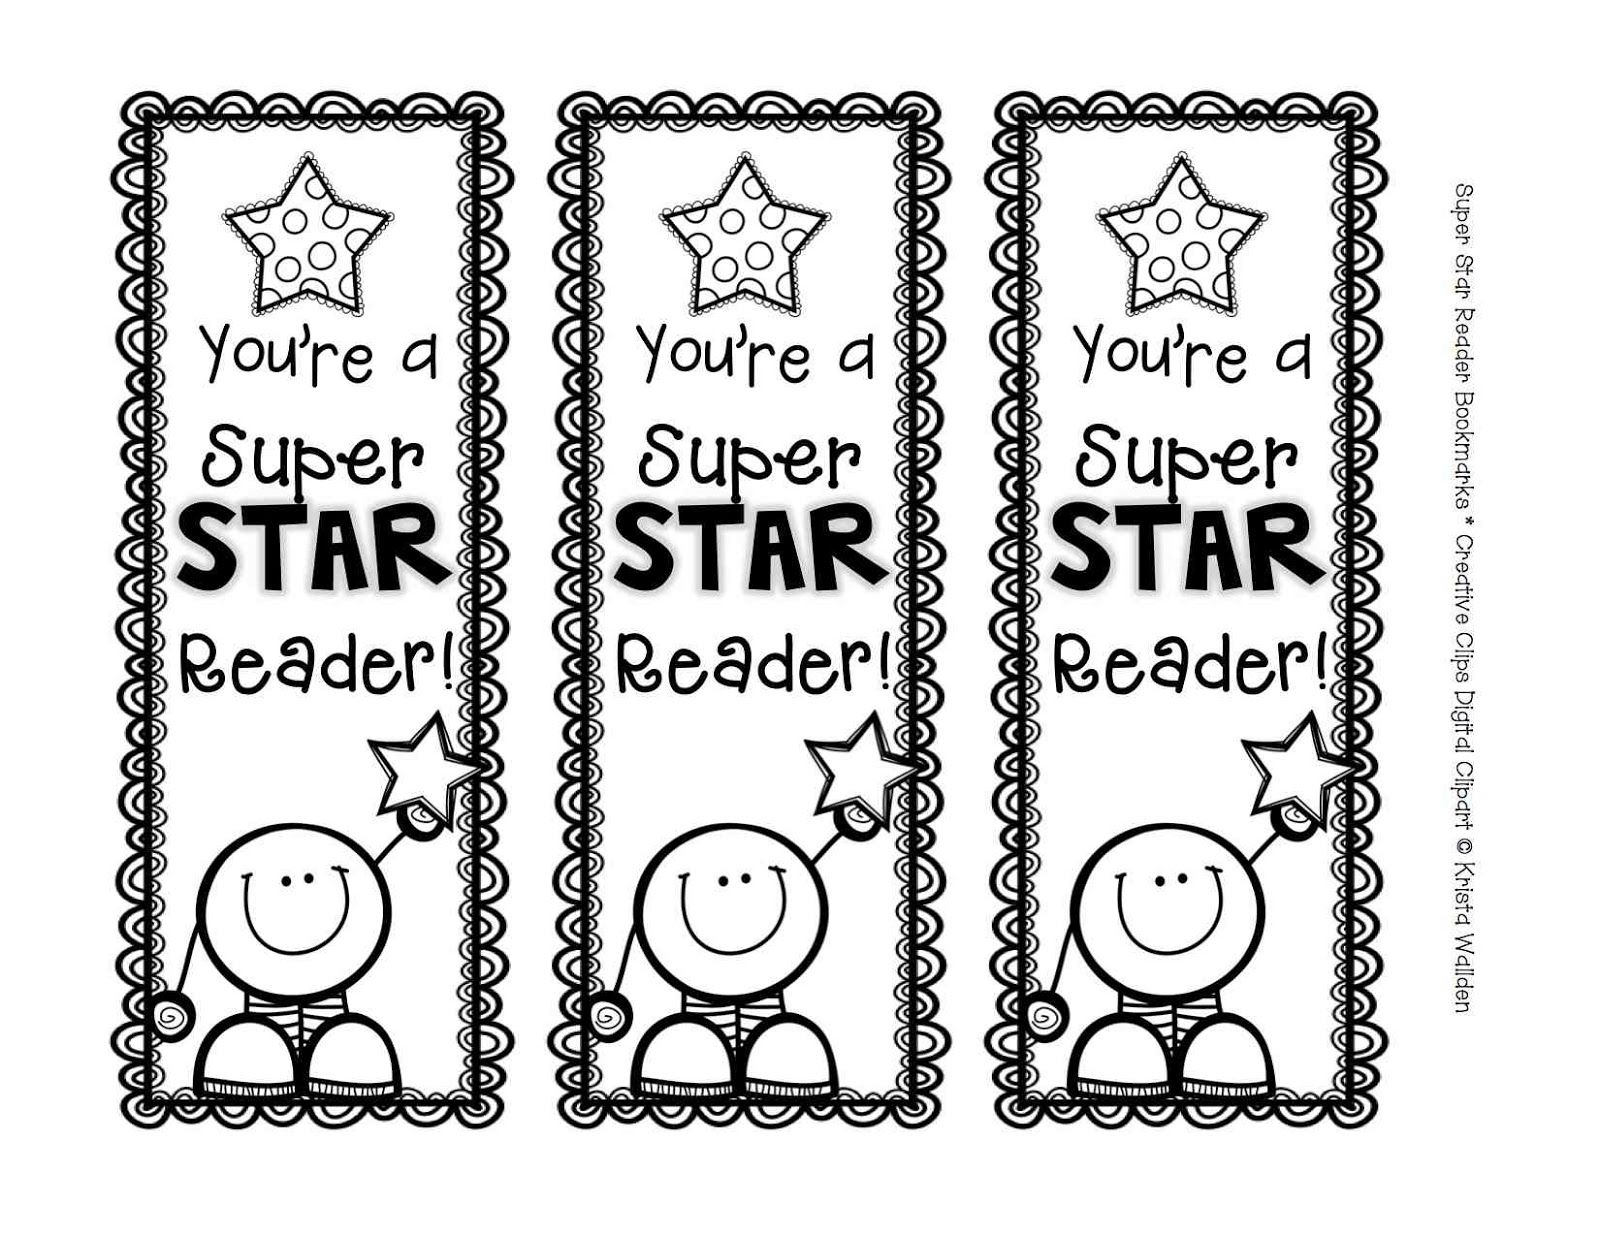 Free Printable Bookmark Templates To Color - Google Search - Free Printable Bookmarks For Libraries